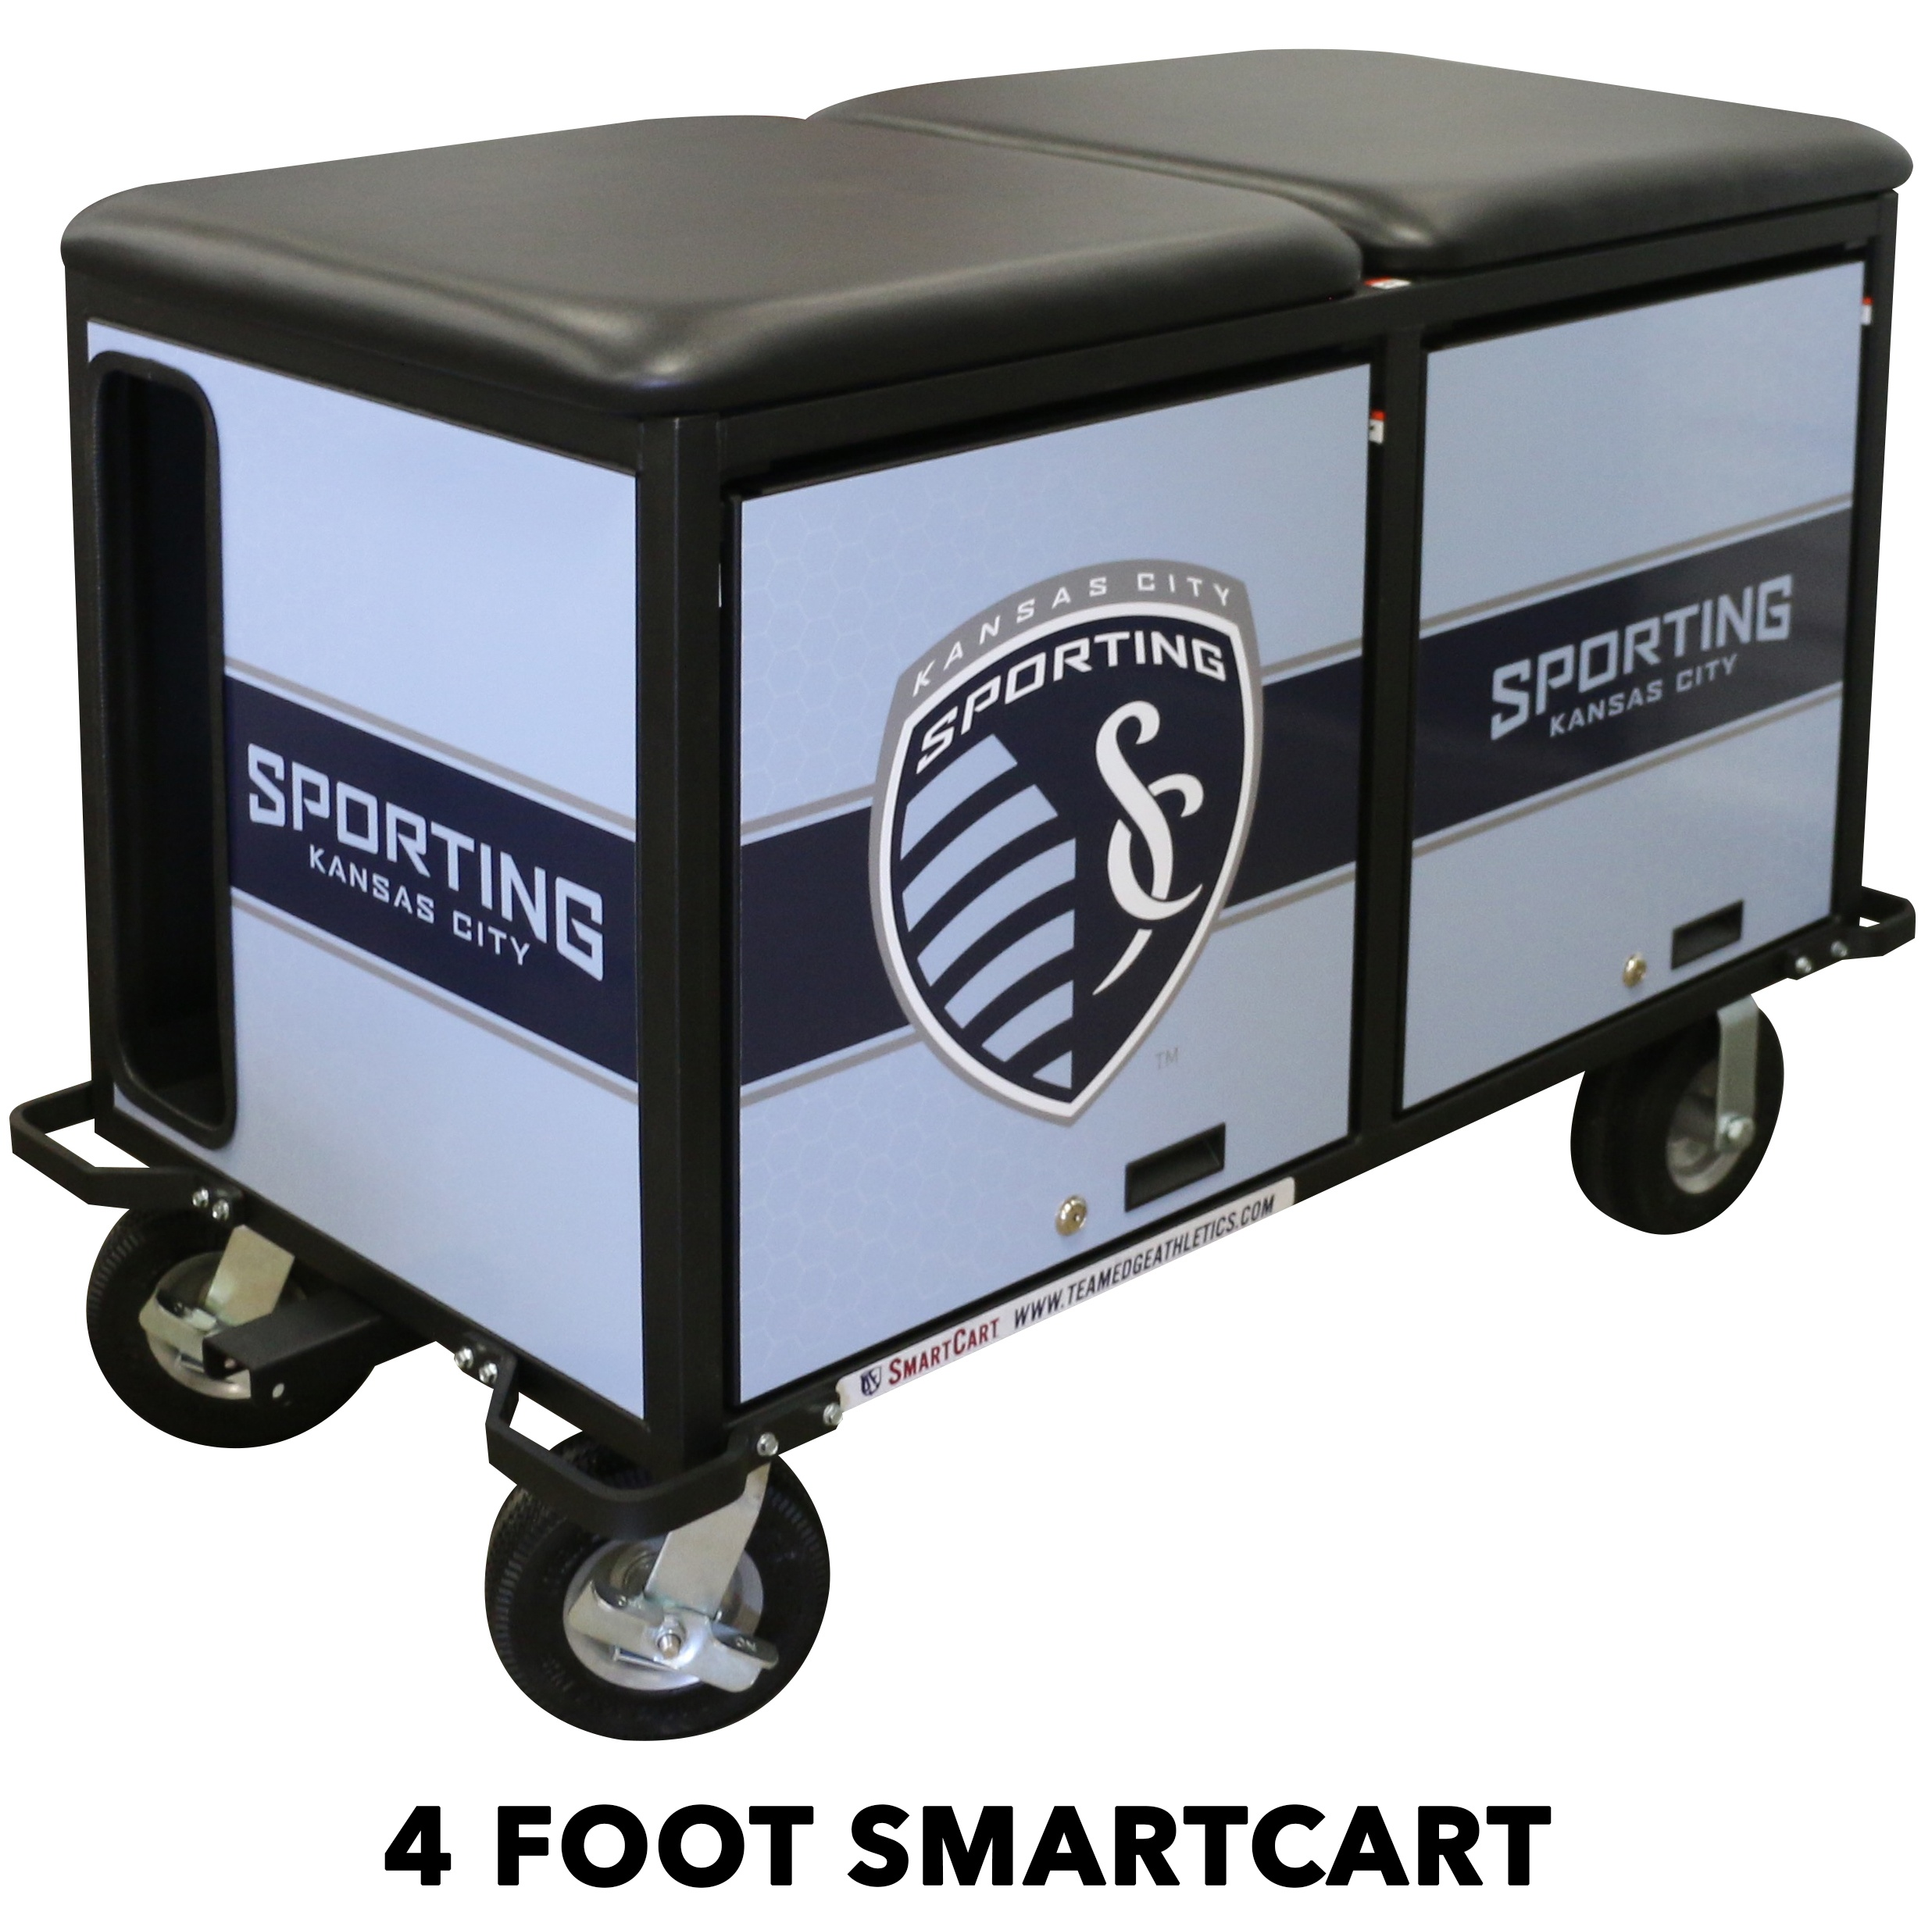 Sporting-KC-4foot-SmartCart-1-1.jpg